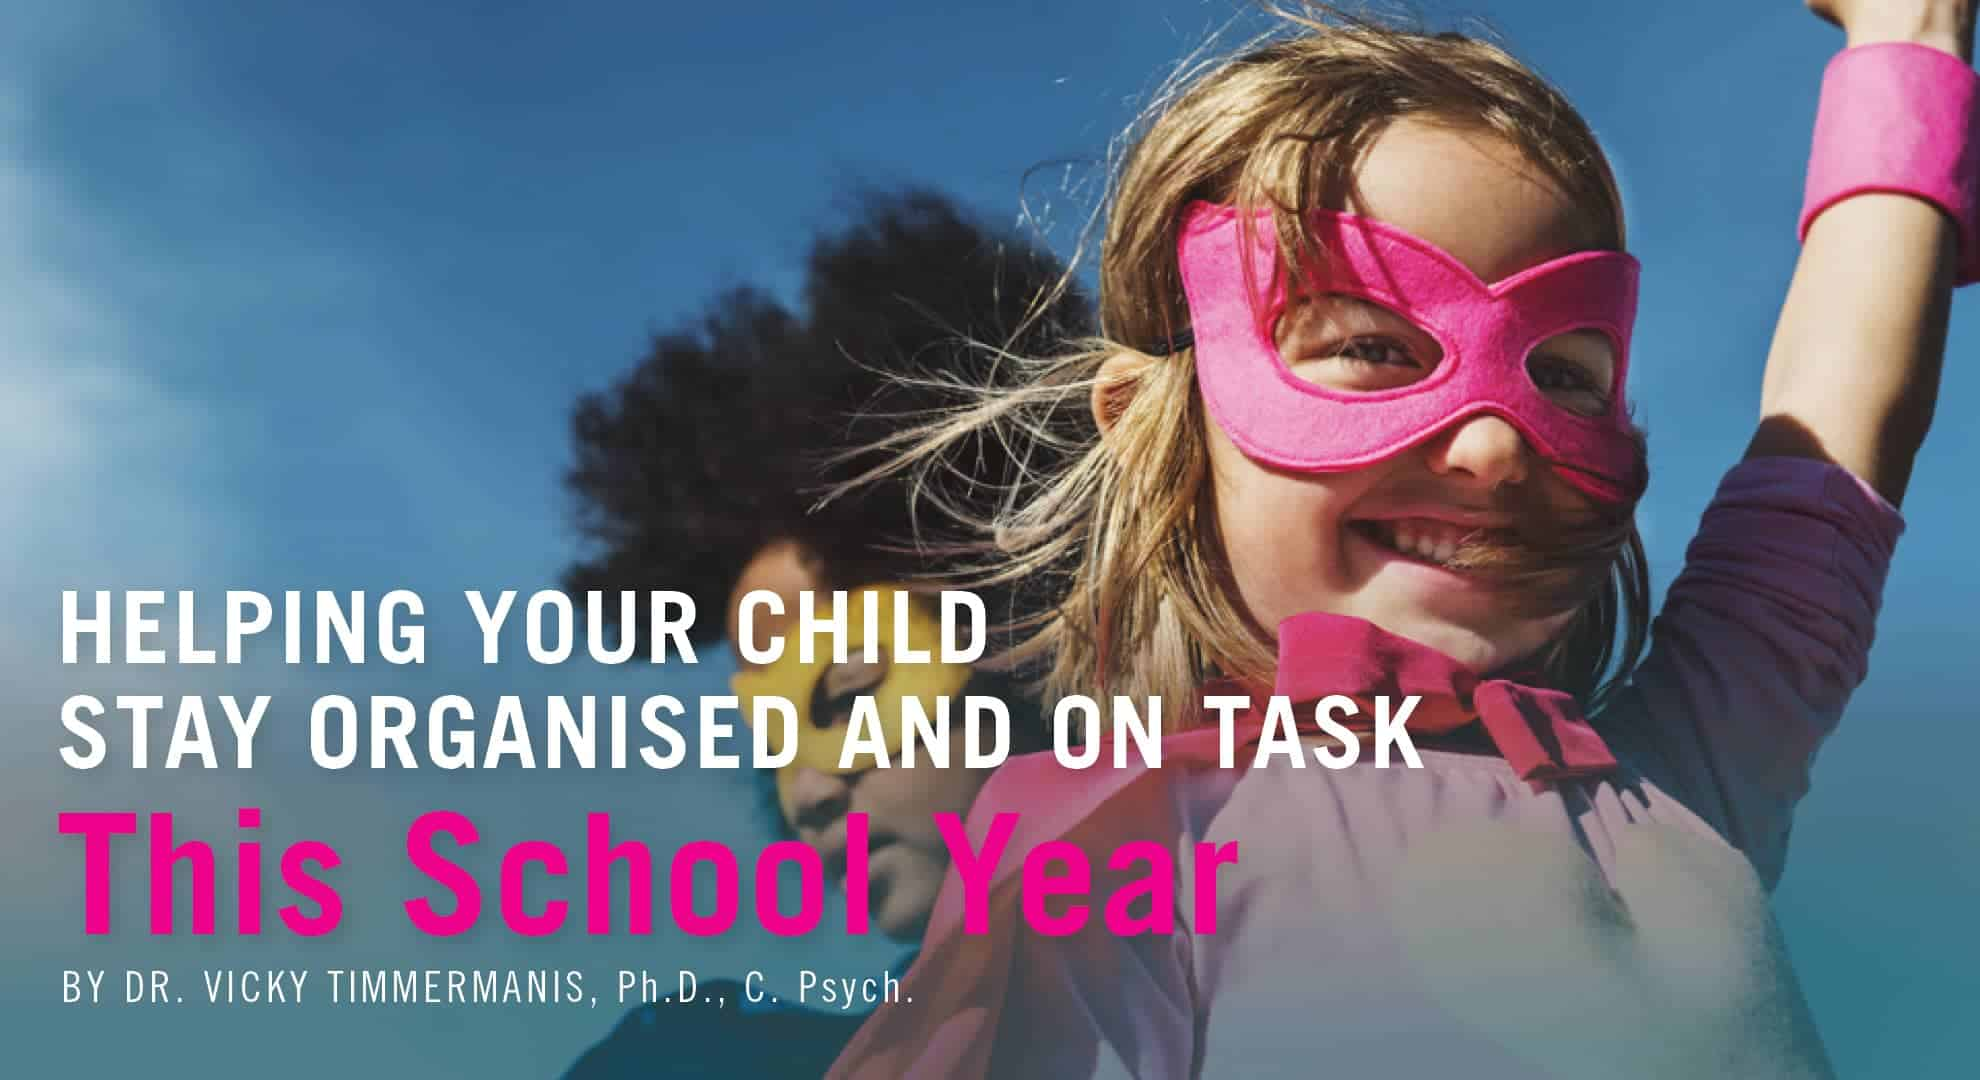 Helping Your ChildStay Organized and On Task This School Year